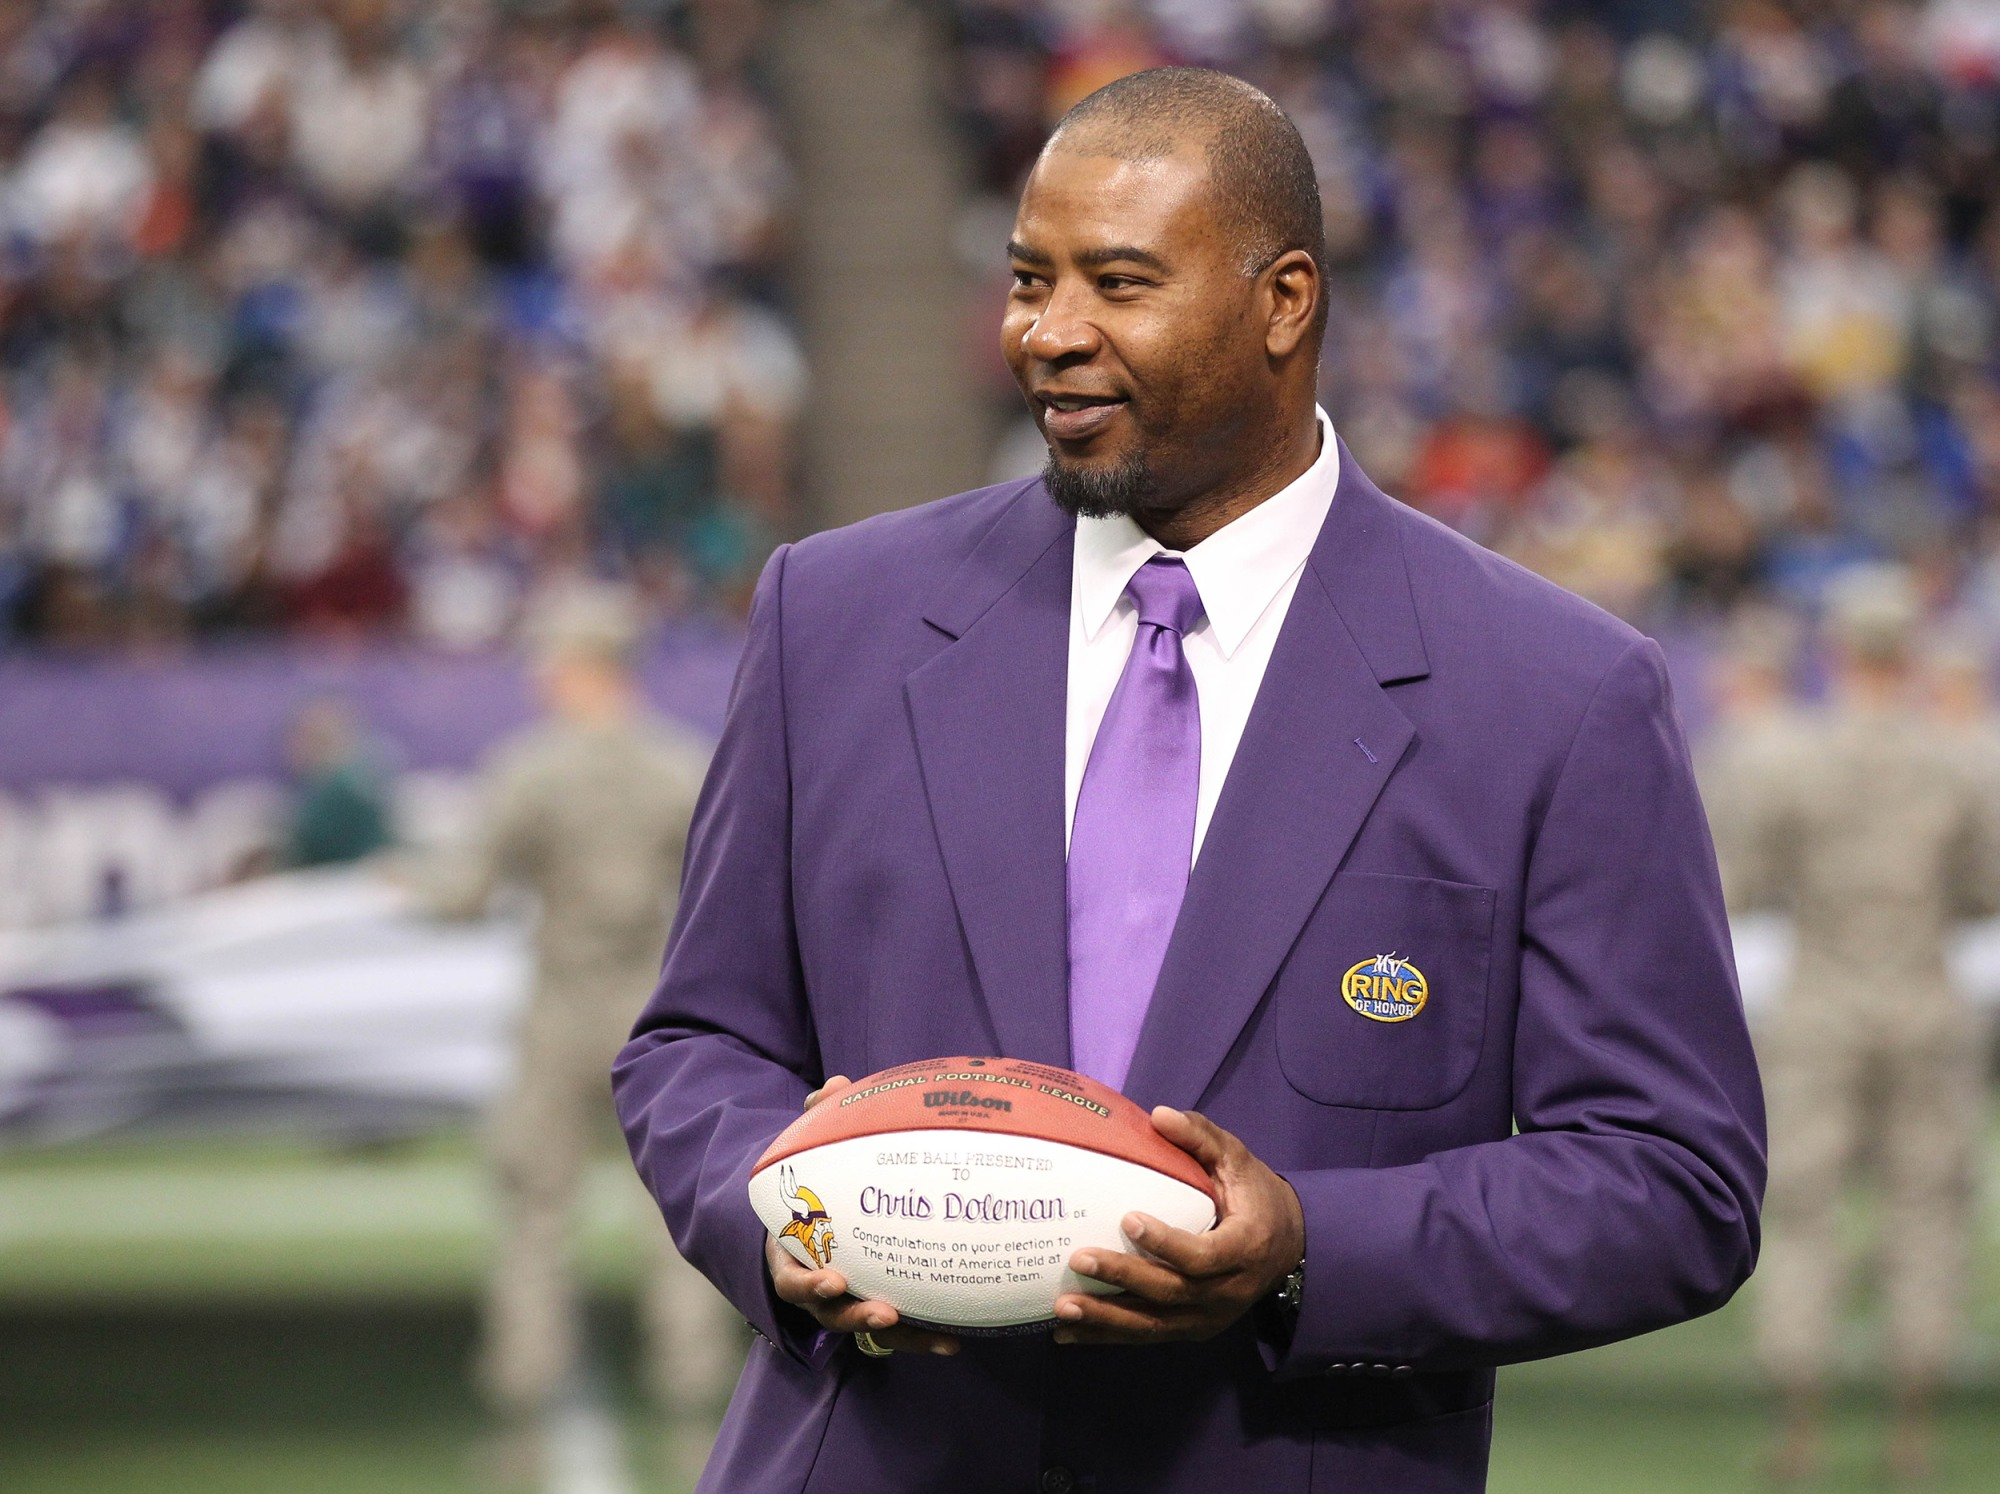 Chris Doleman, NFL Hall of Famer, dies at 58